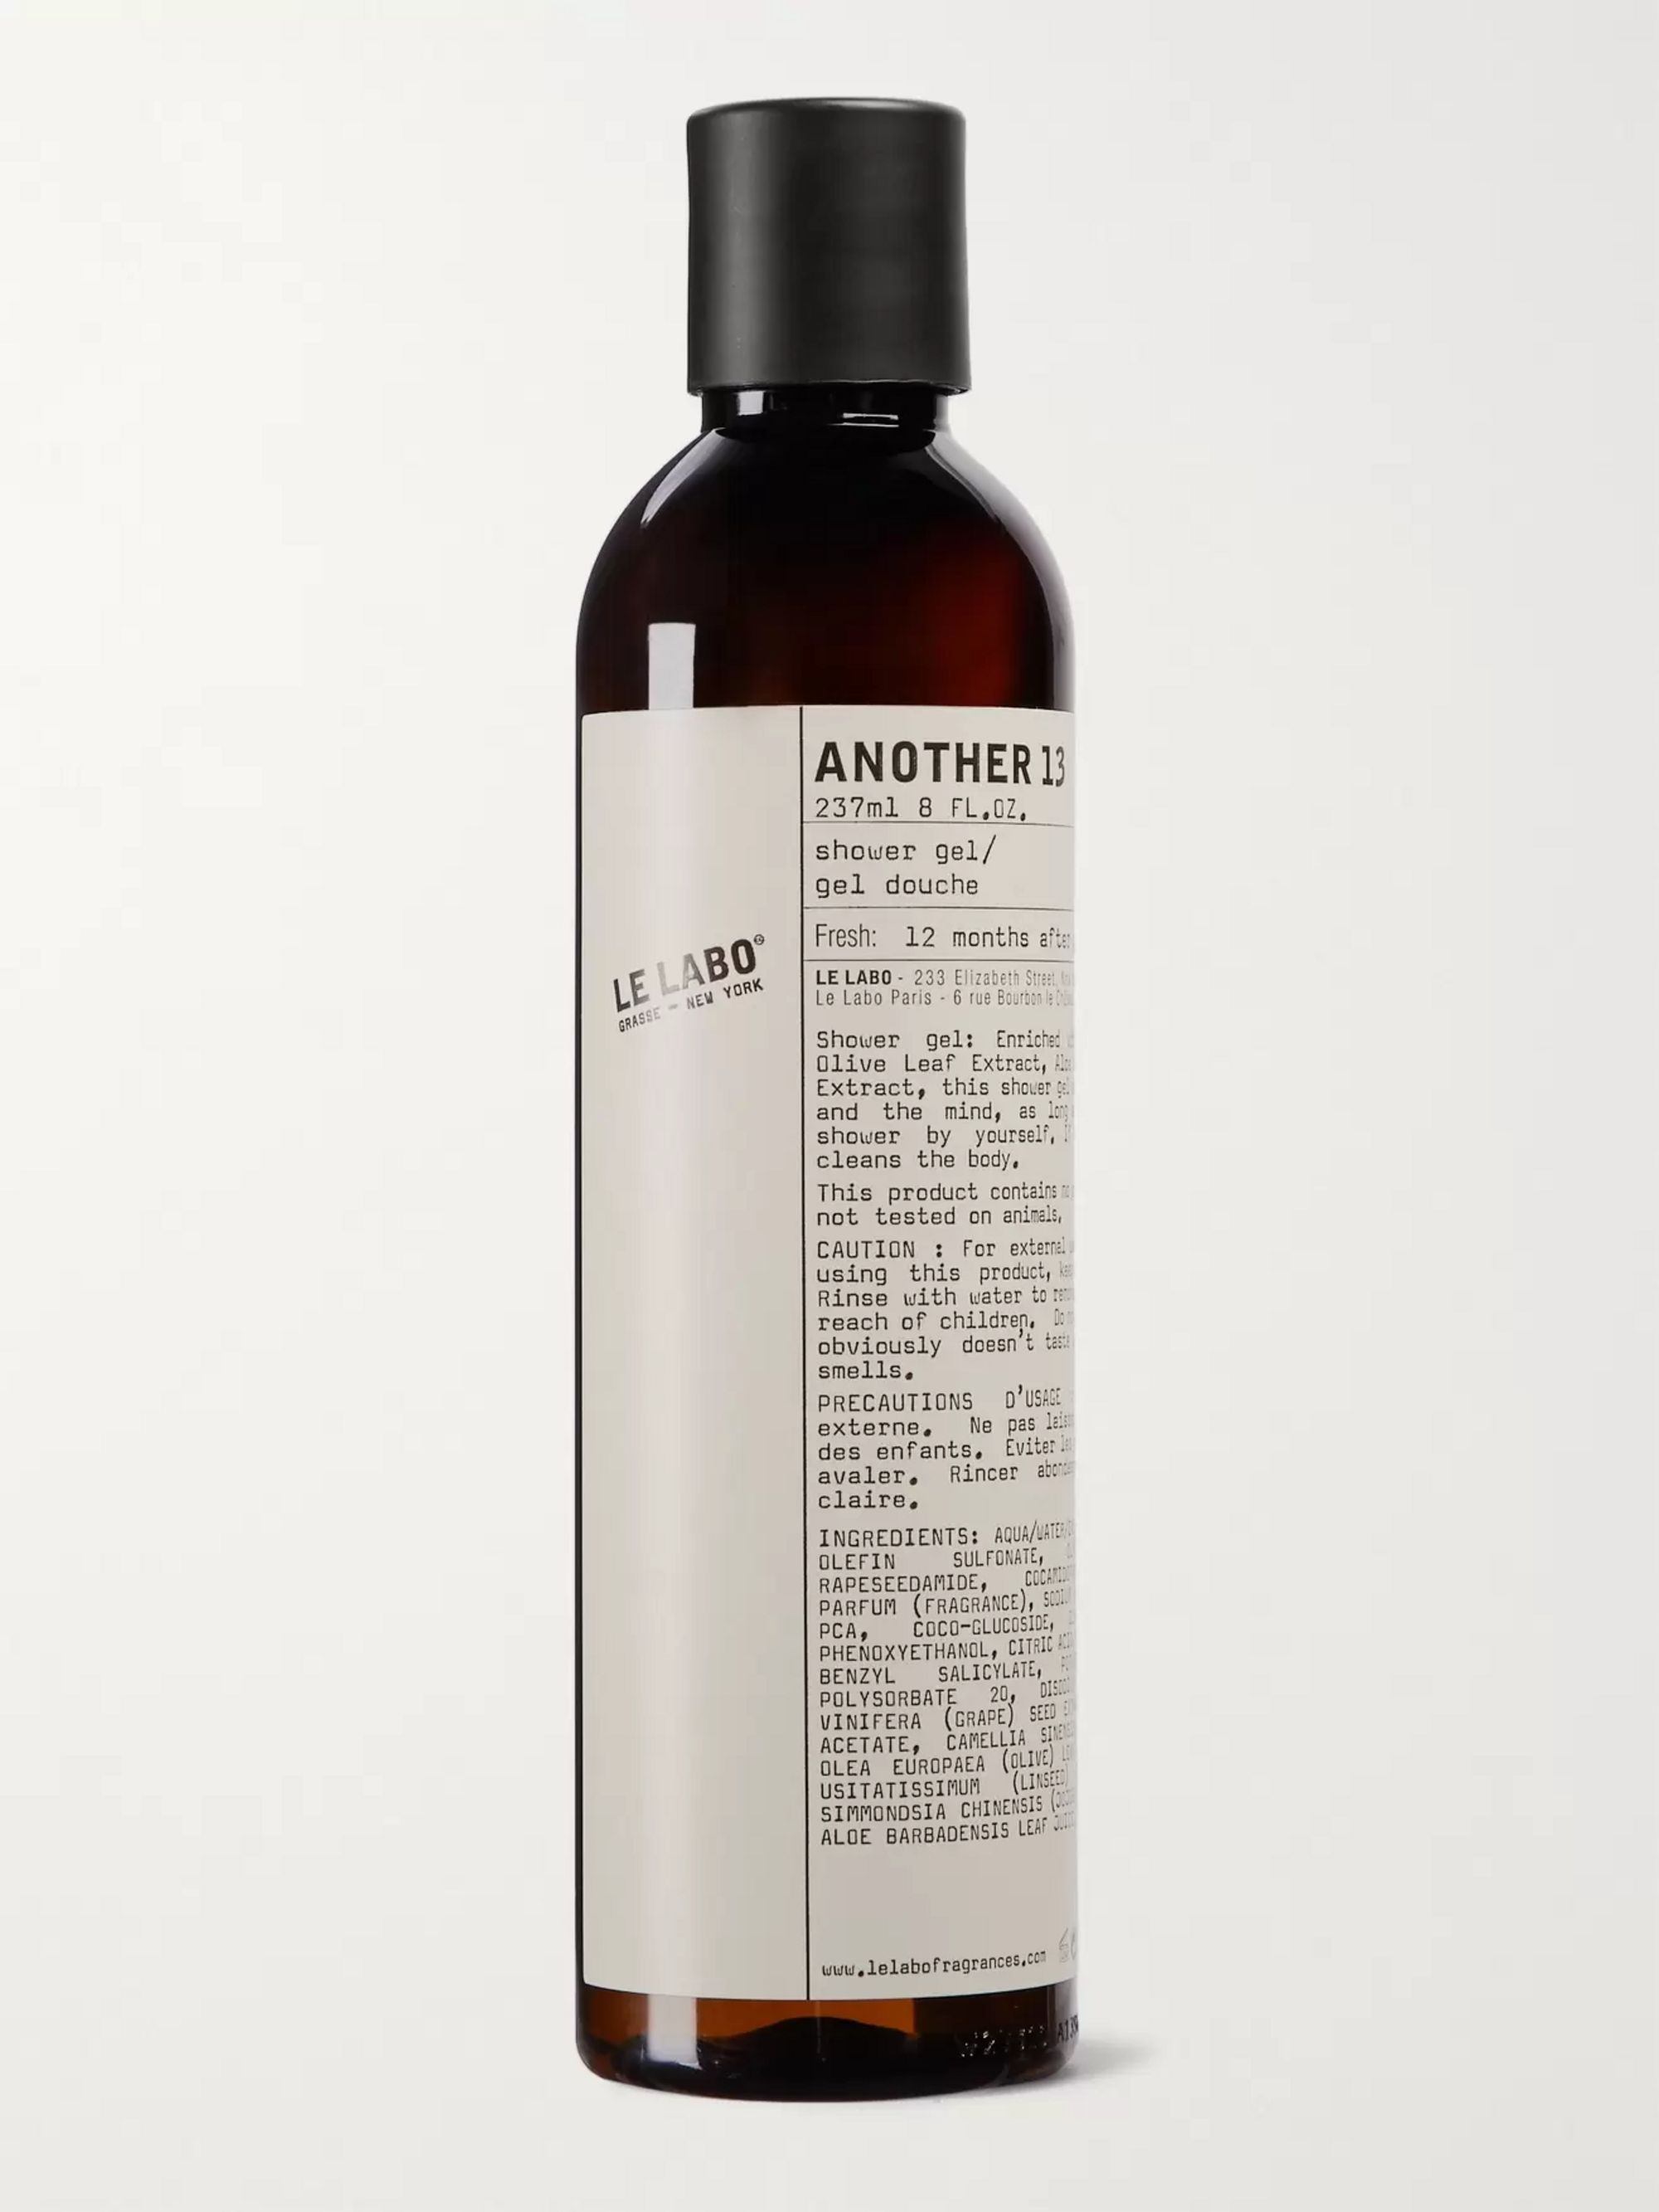 An Other 13 Shower Gel, 237ml by Le Labo